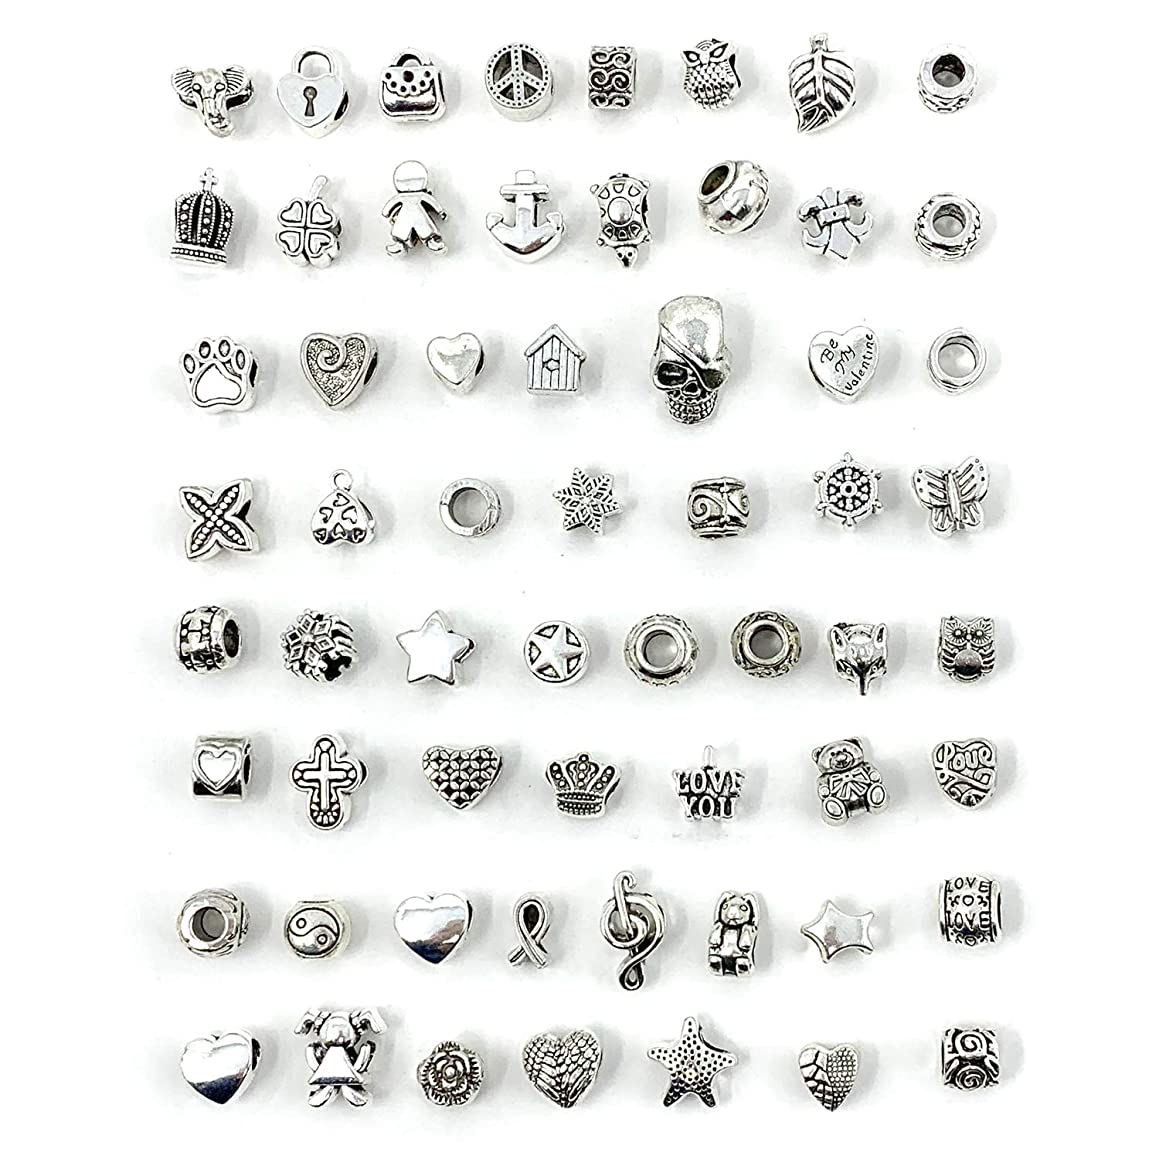 JIALEEY Wholesale Bulk Mix 60 Pcs Tibetan Silver Tone Color Spacer Loose Beads Fit European Charm Bracelet Lot for Jewelry Making Findings DIY